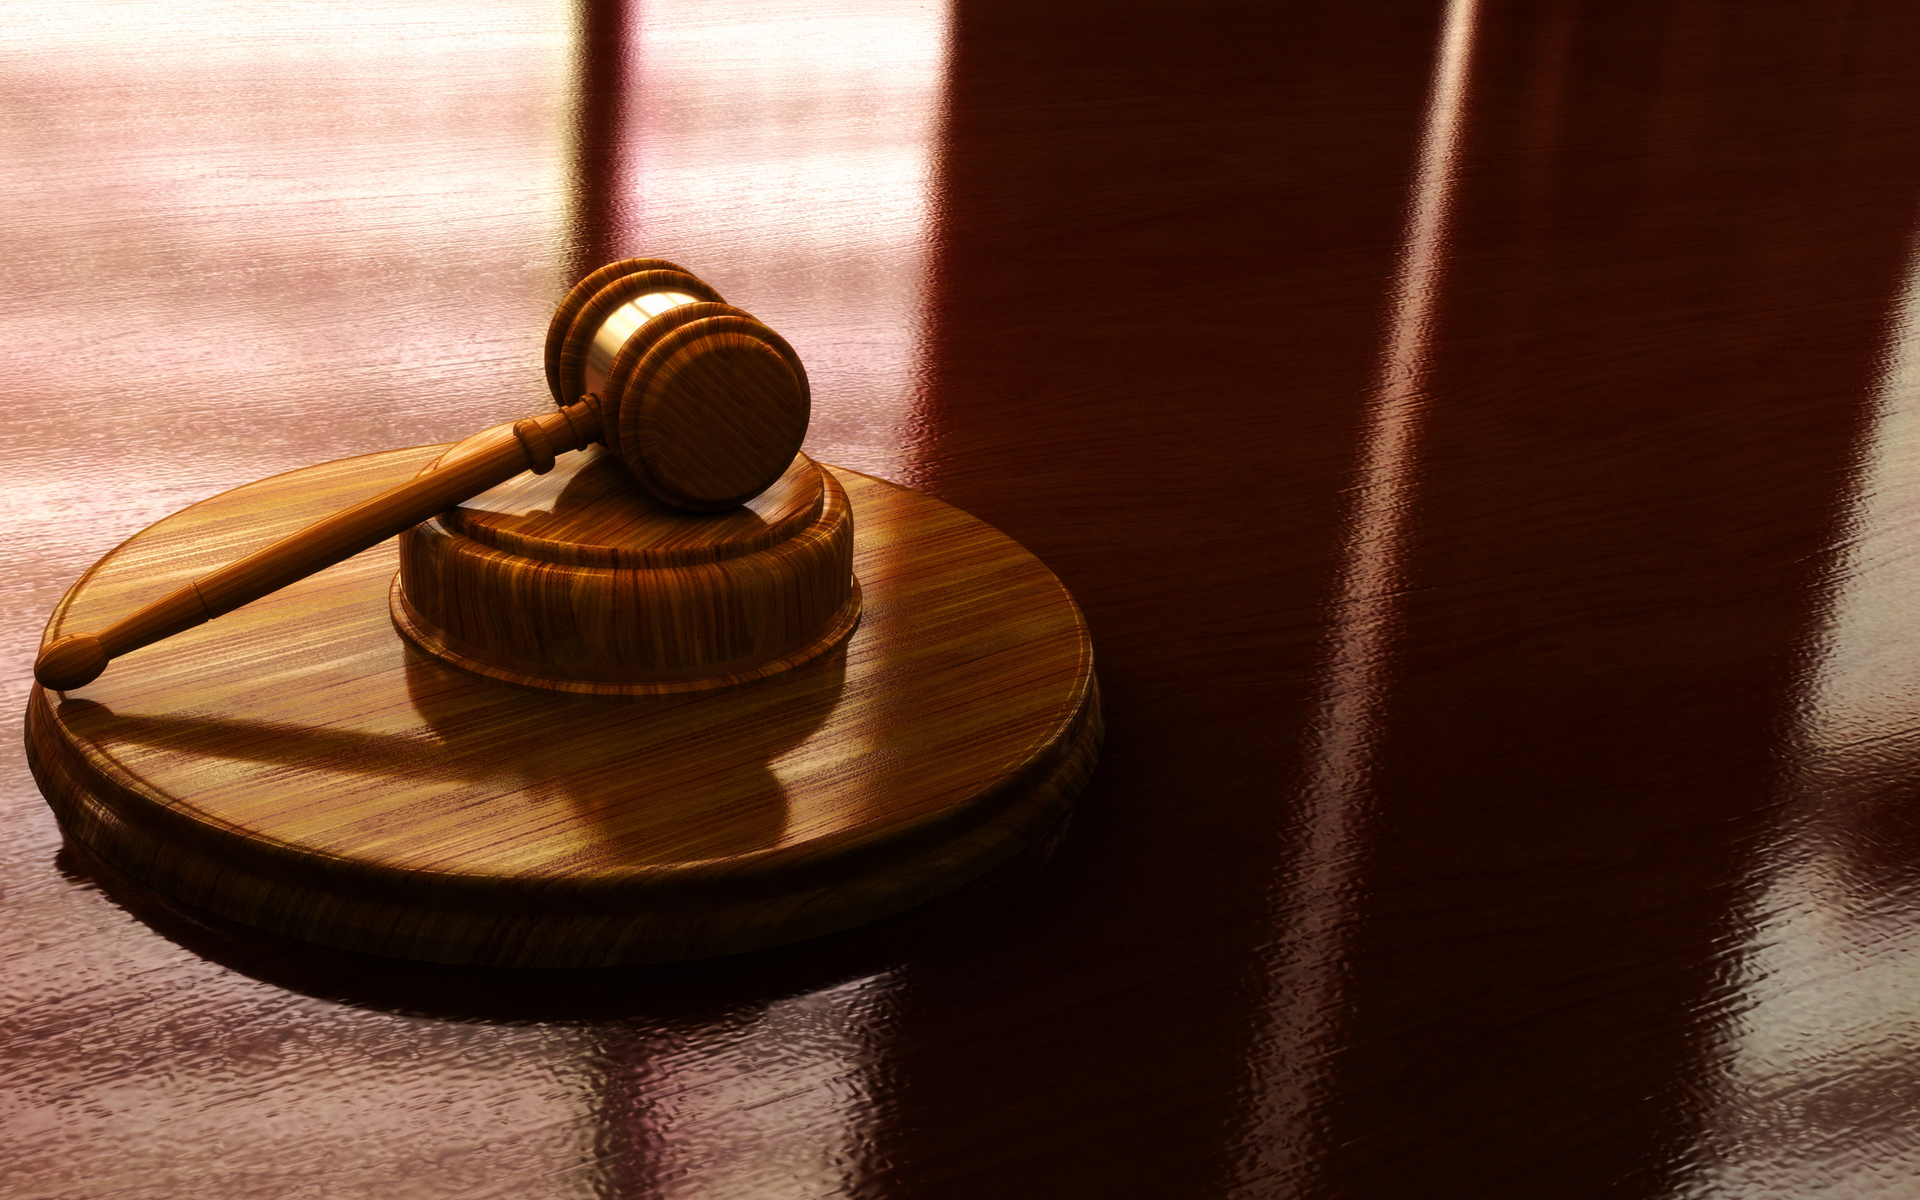 Former Locke Lord Attorney Faces OneCoin Laundering Charges